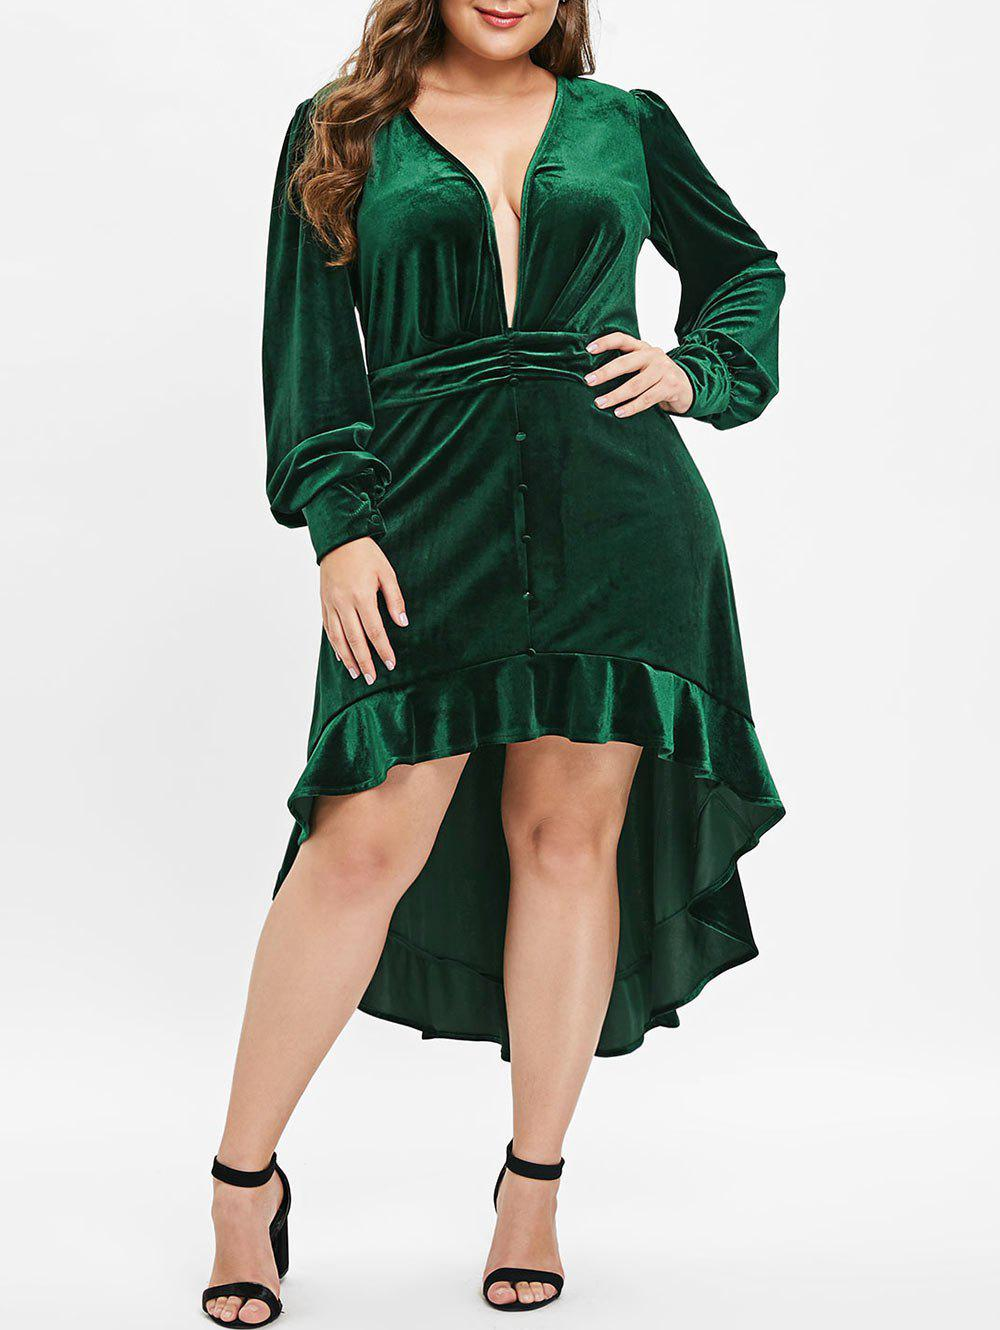 Plus Size Homecoming Dresses 4x